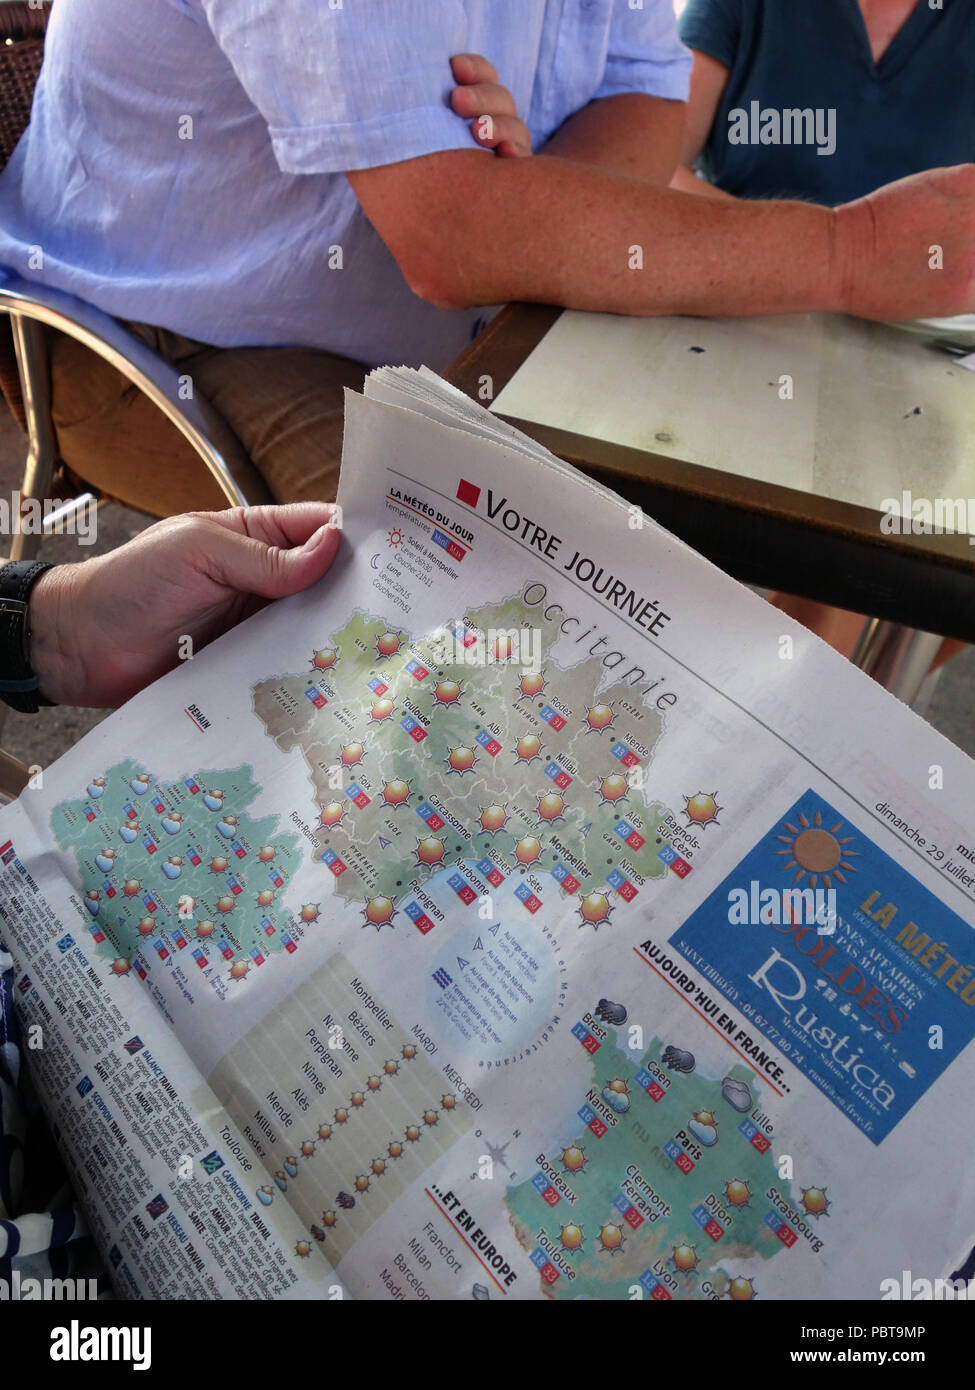 Another heatwave in France. The local french newspaper shows a map drawn showing the sun sun and more sun all week in this last week of July 2018 - Stock Image